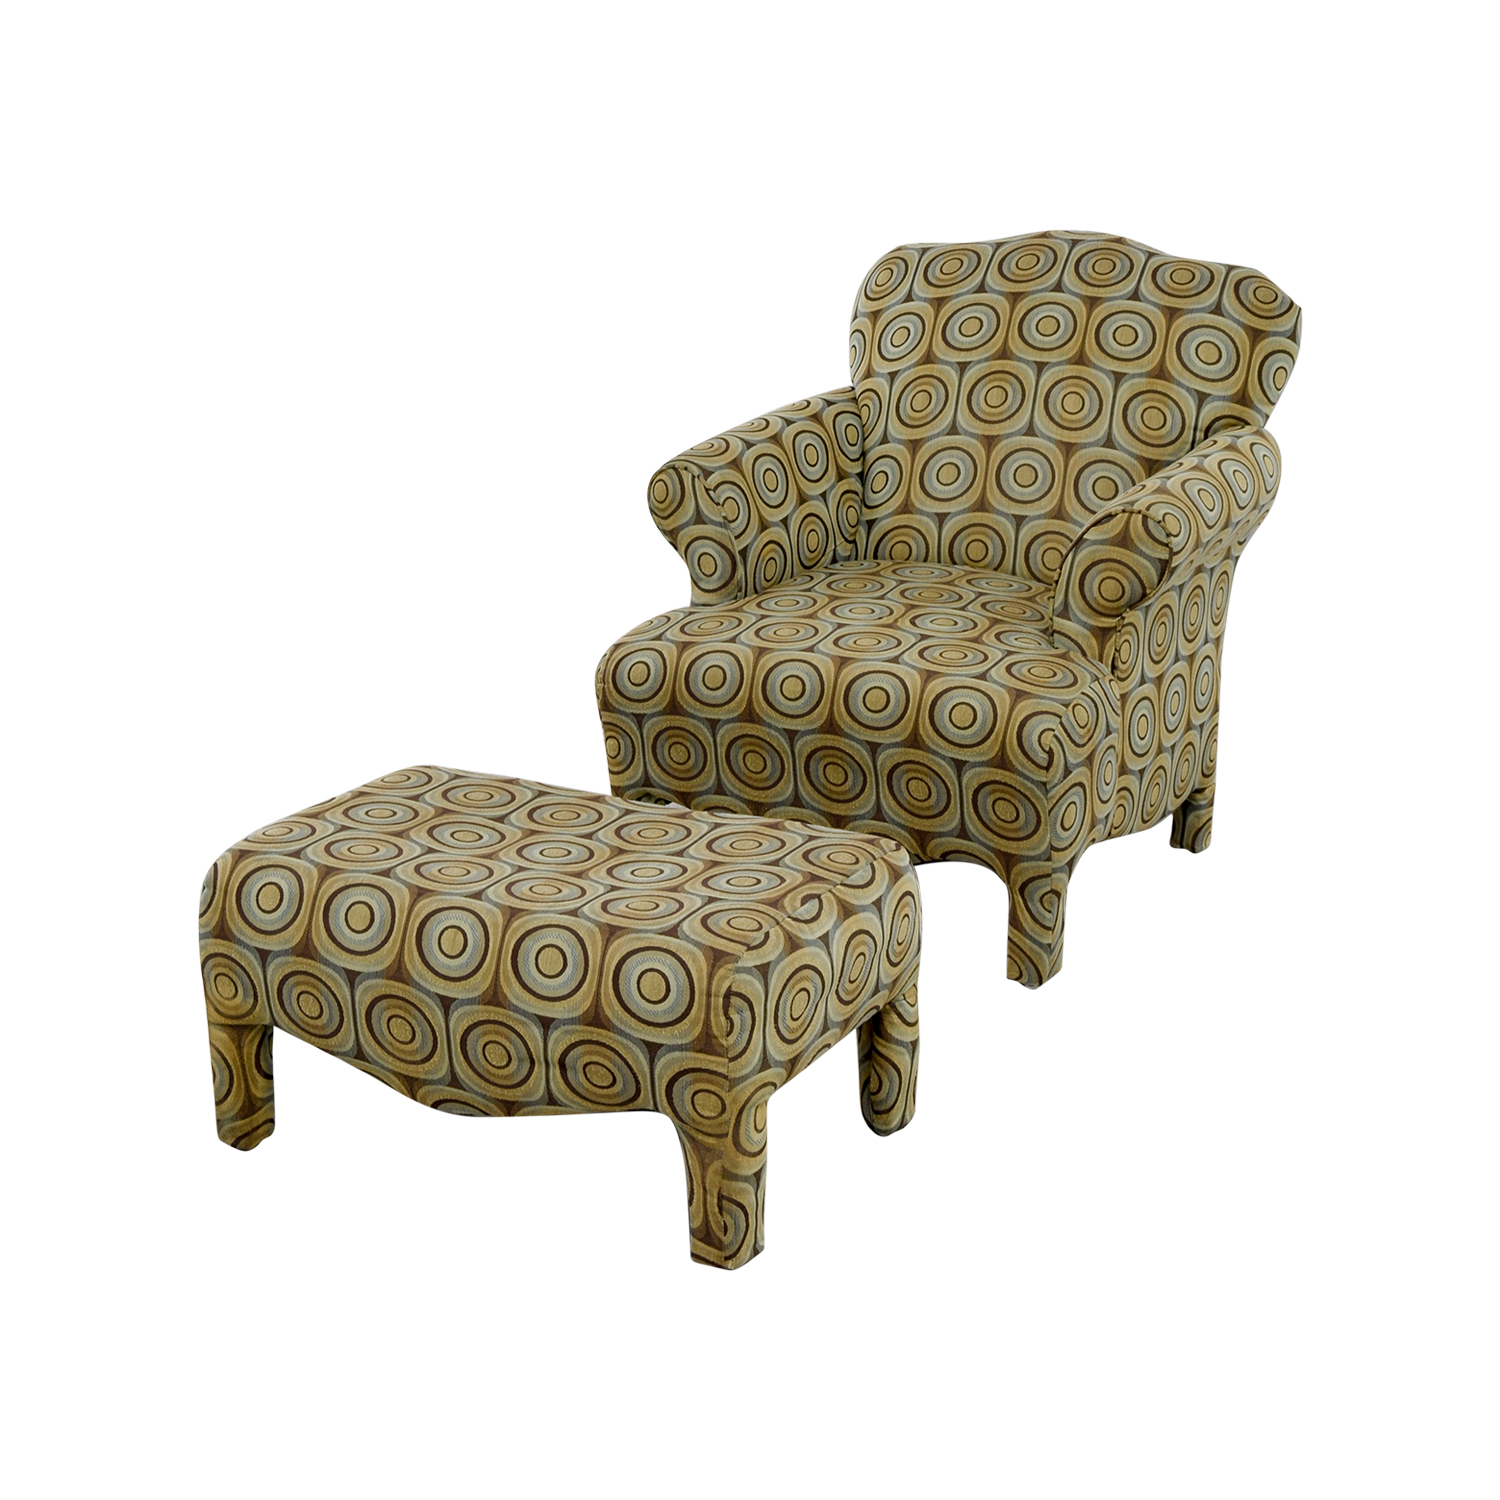 89 Off Bob 39 S Furniture Bob 39 S Furniture Chair And Ottoman Chairs